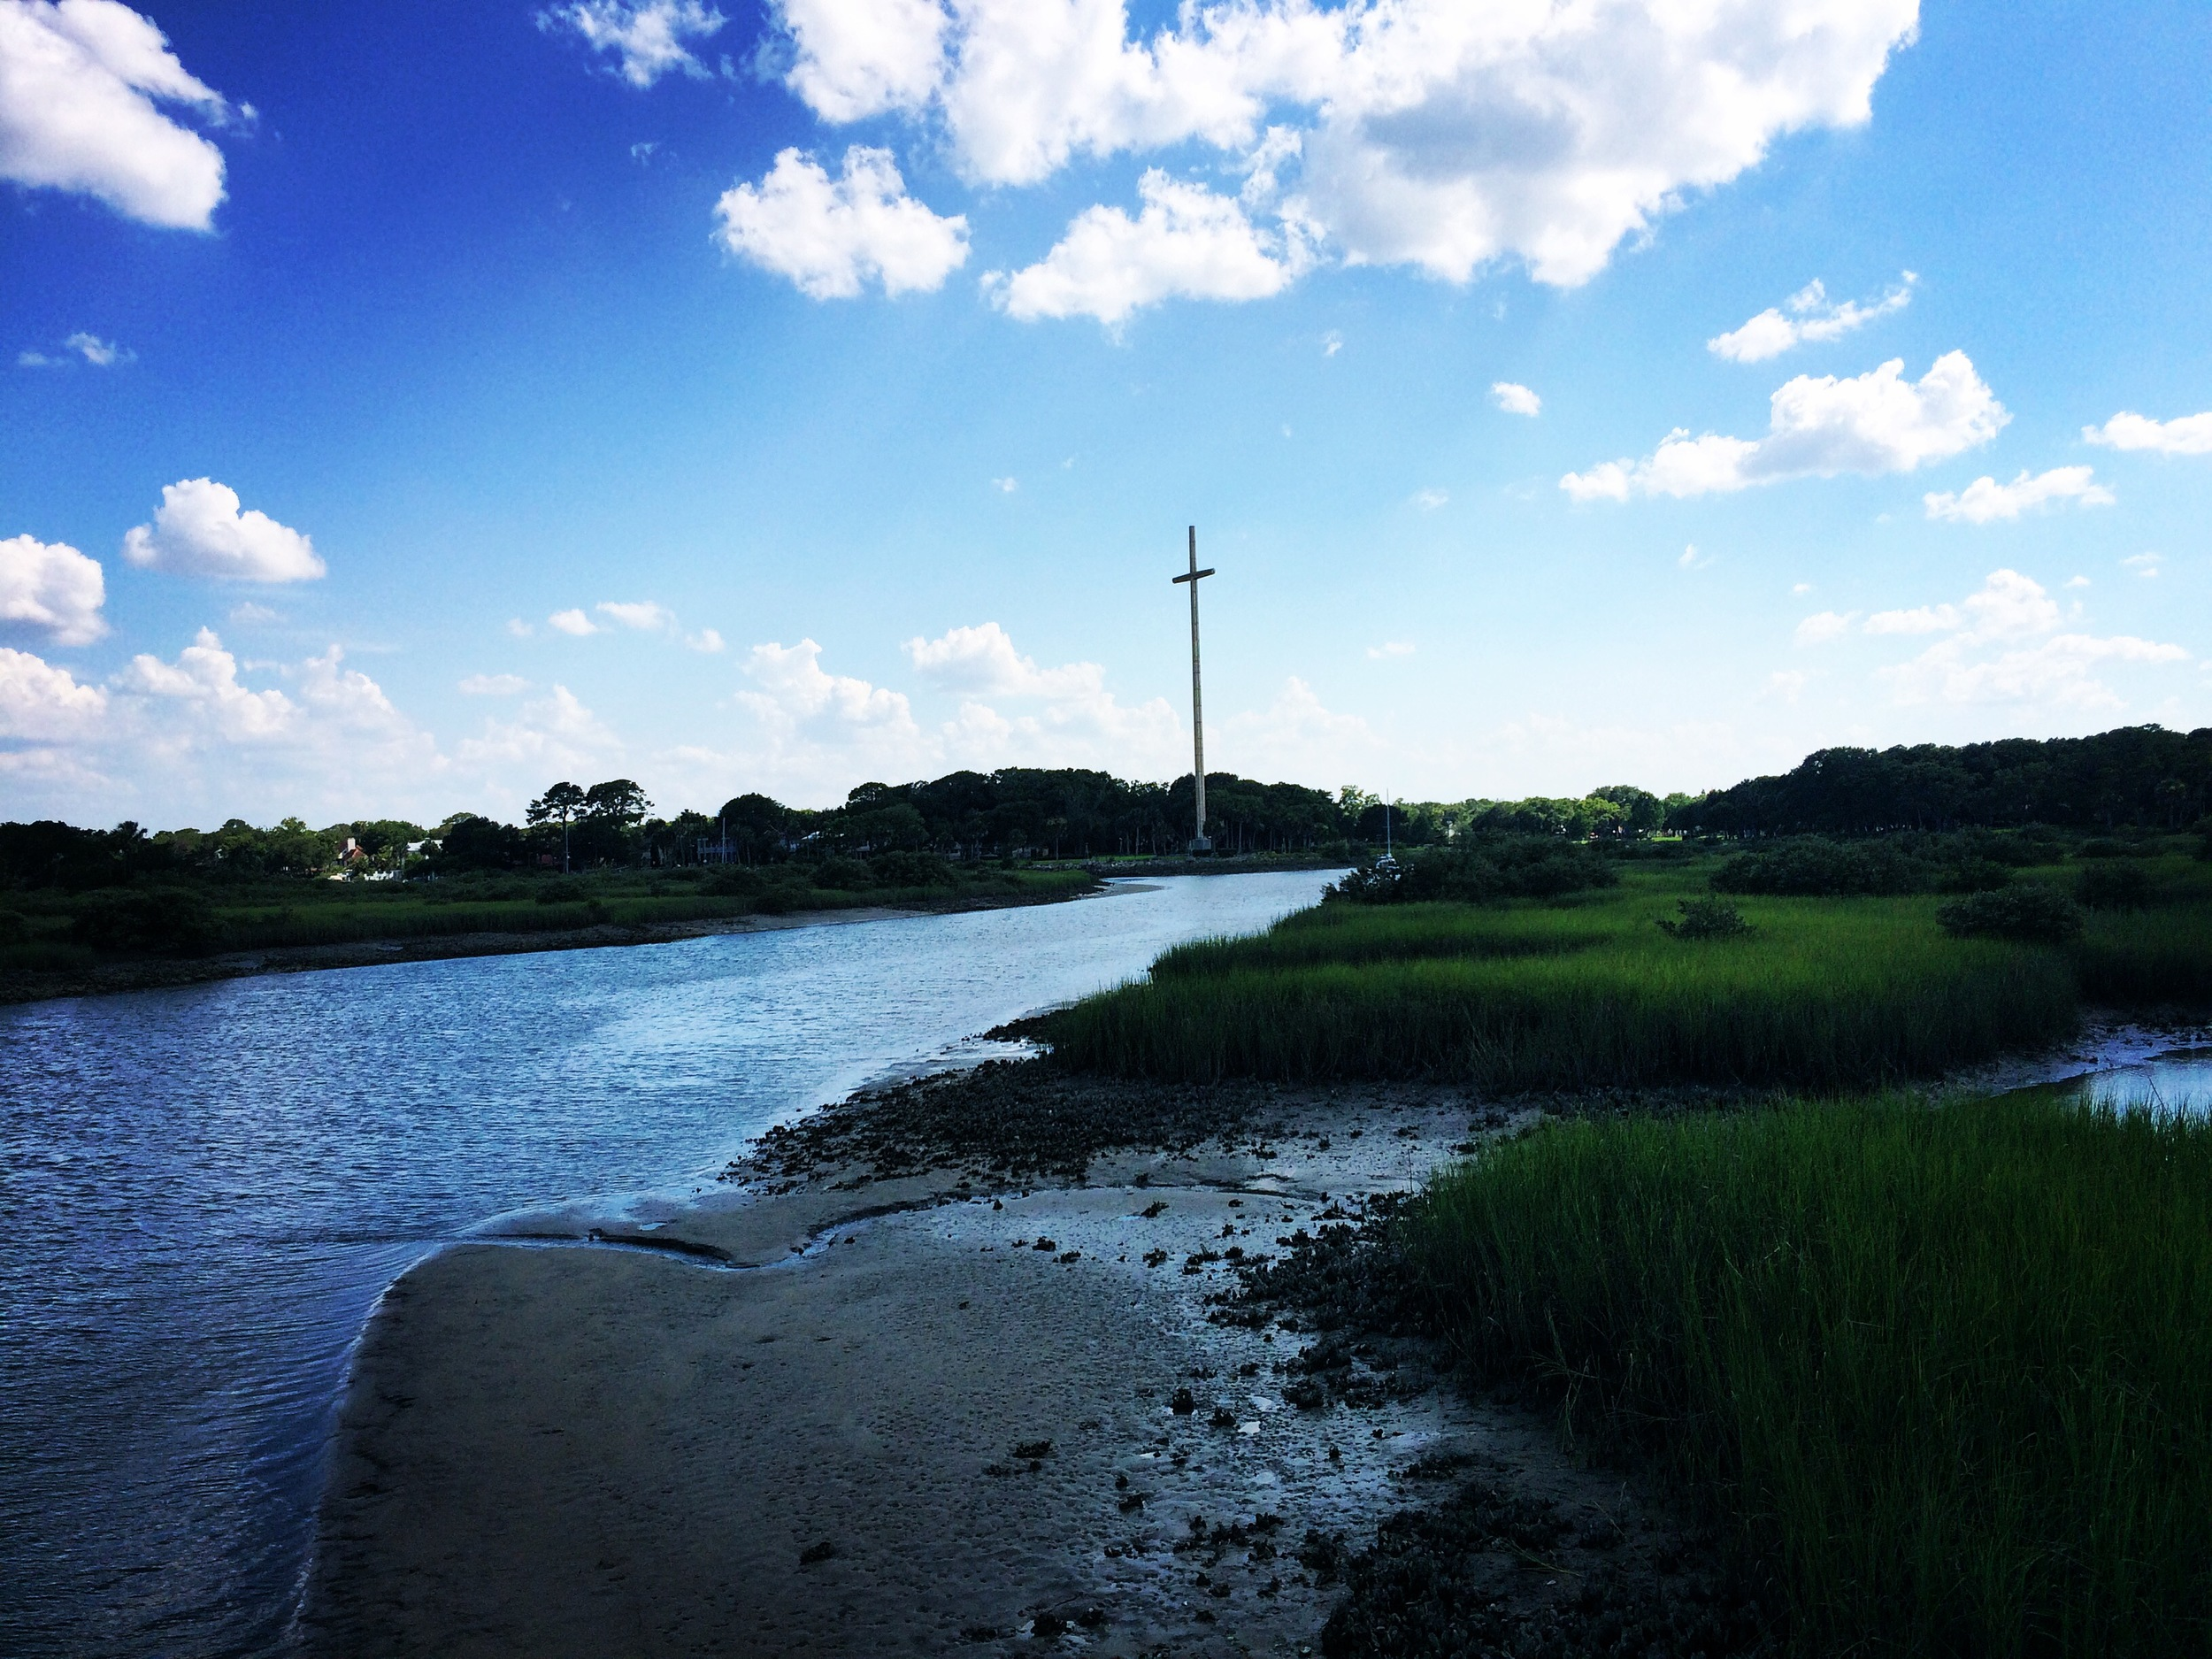 This is the waterway that was used to land in St. Augustine. The landing site is marked by the worlds tallest cross.